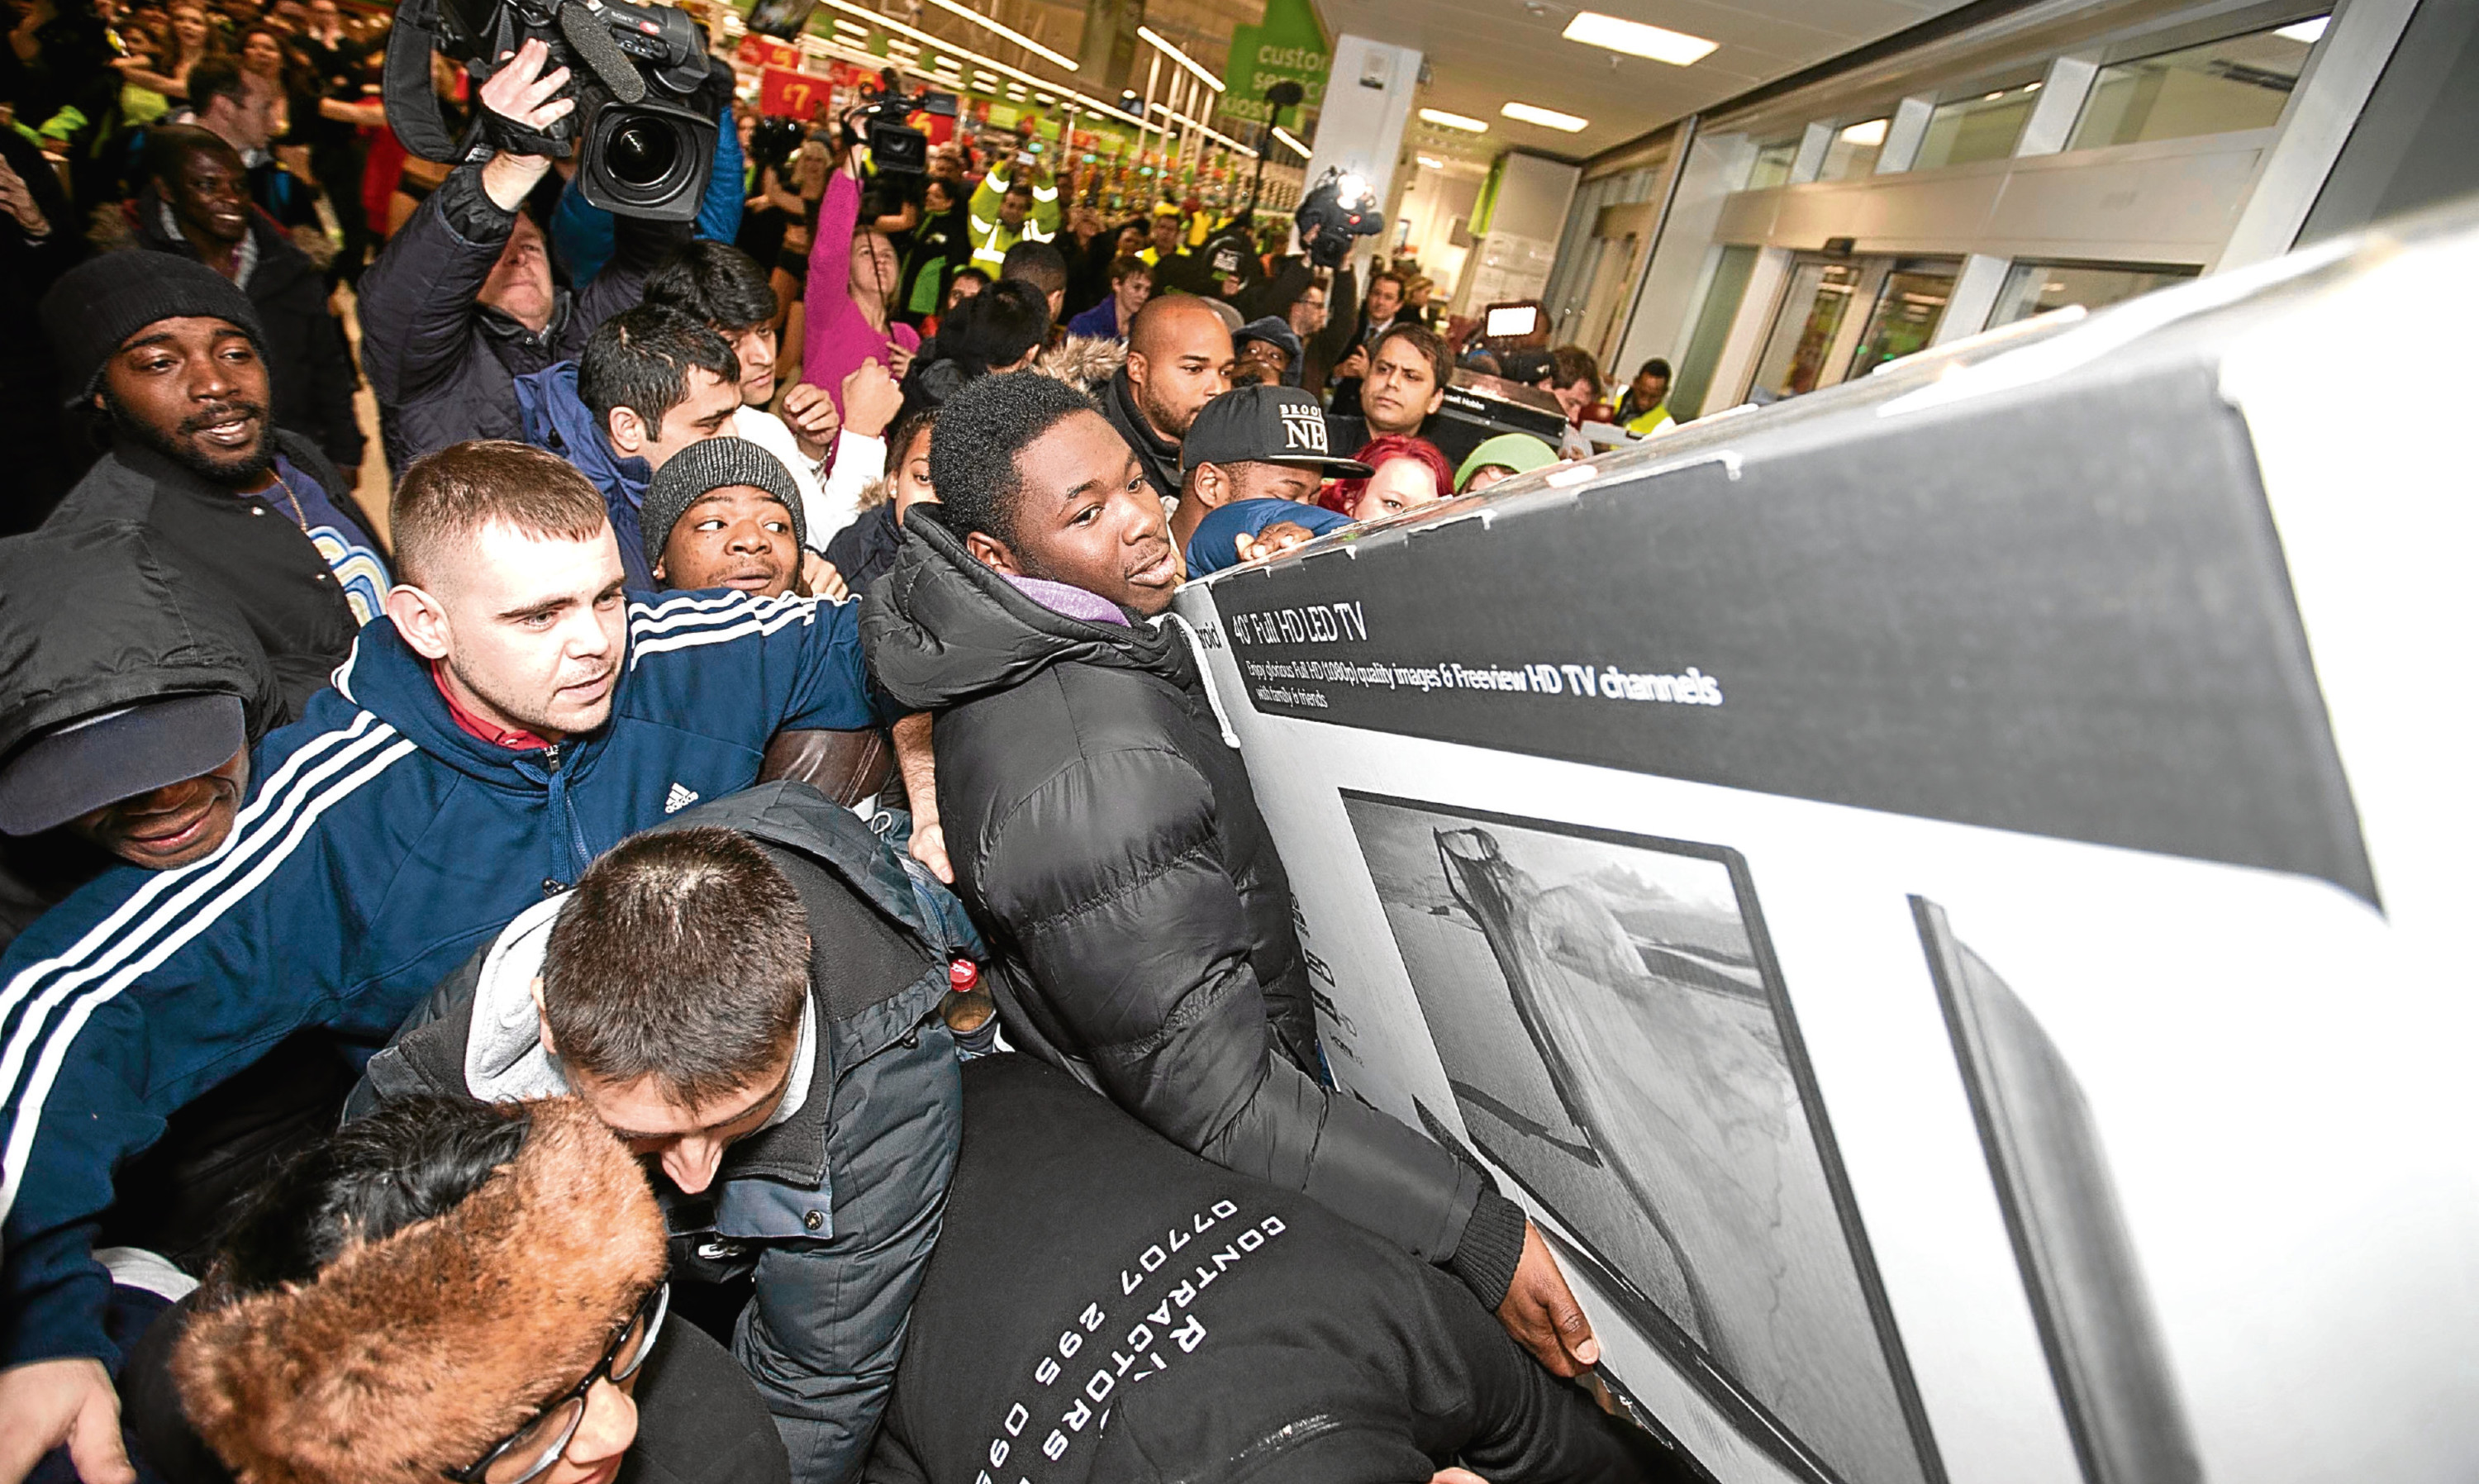 Unlike these scenes from 2014, it's fair to say the Black Friday phenomenon has frosted over on the UK high street this year.